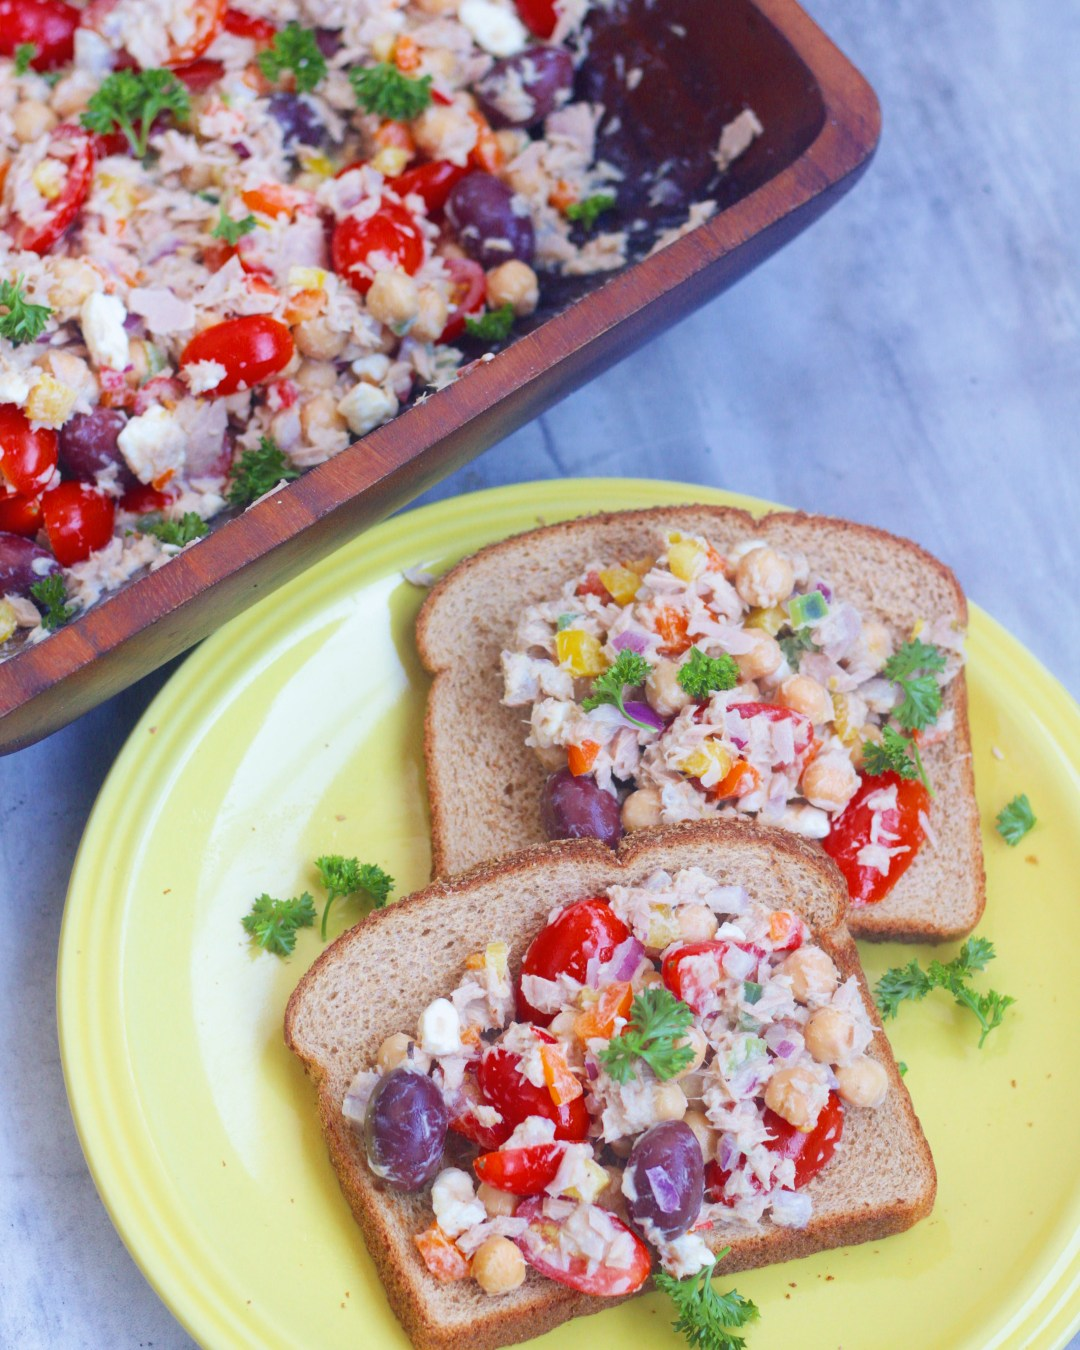 The BEST Mediterranean Tuna Salad ever with fresh herbs, chickpeas, and a medley of vegetables! So easy to make and perfect for lunches on the go!